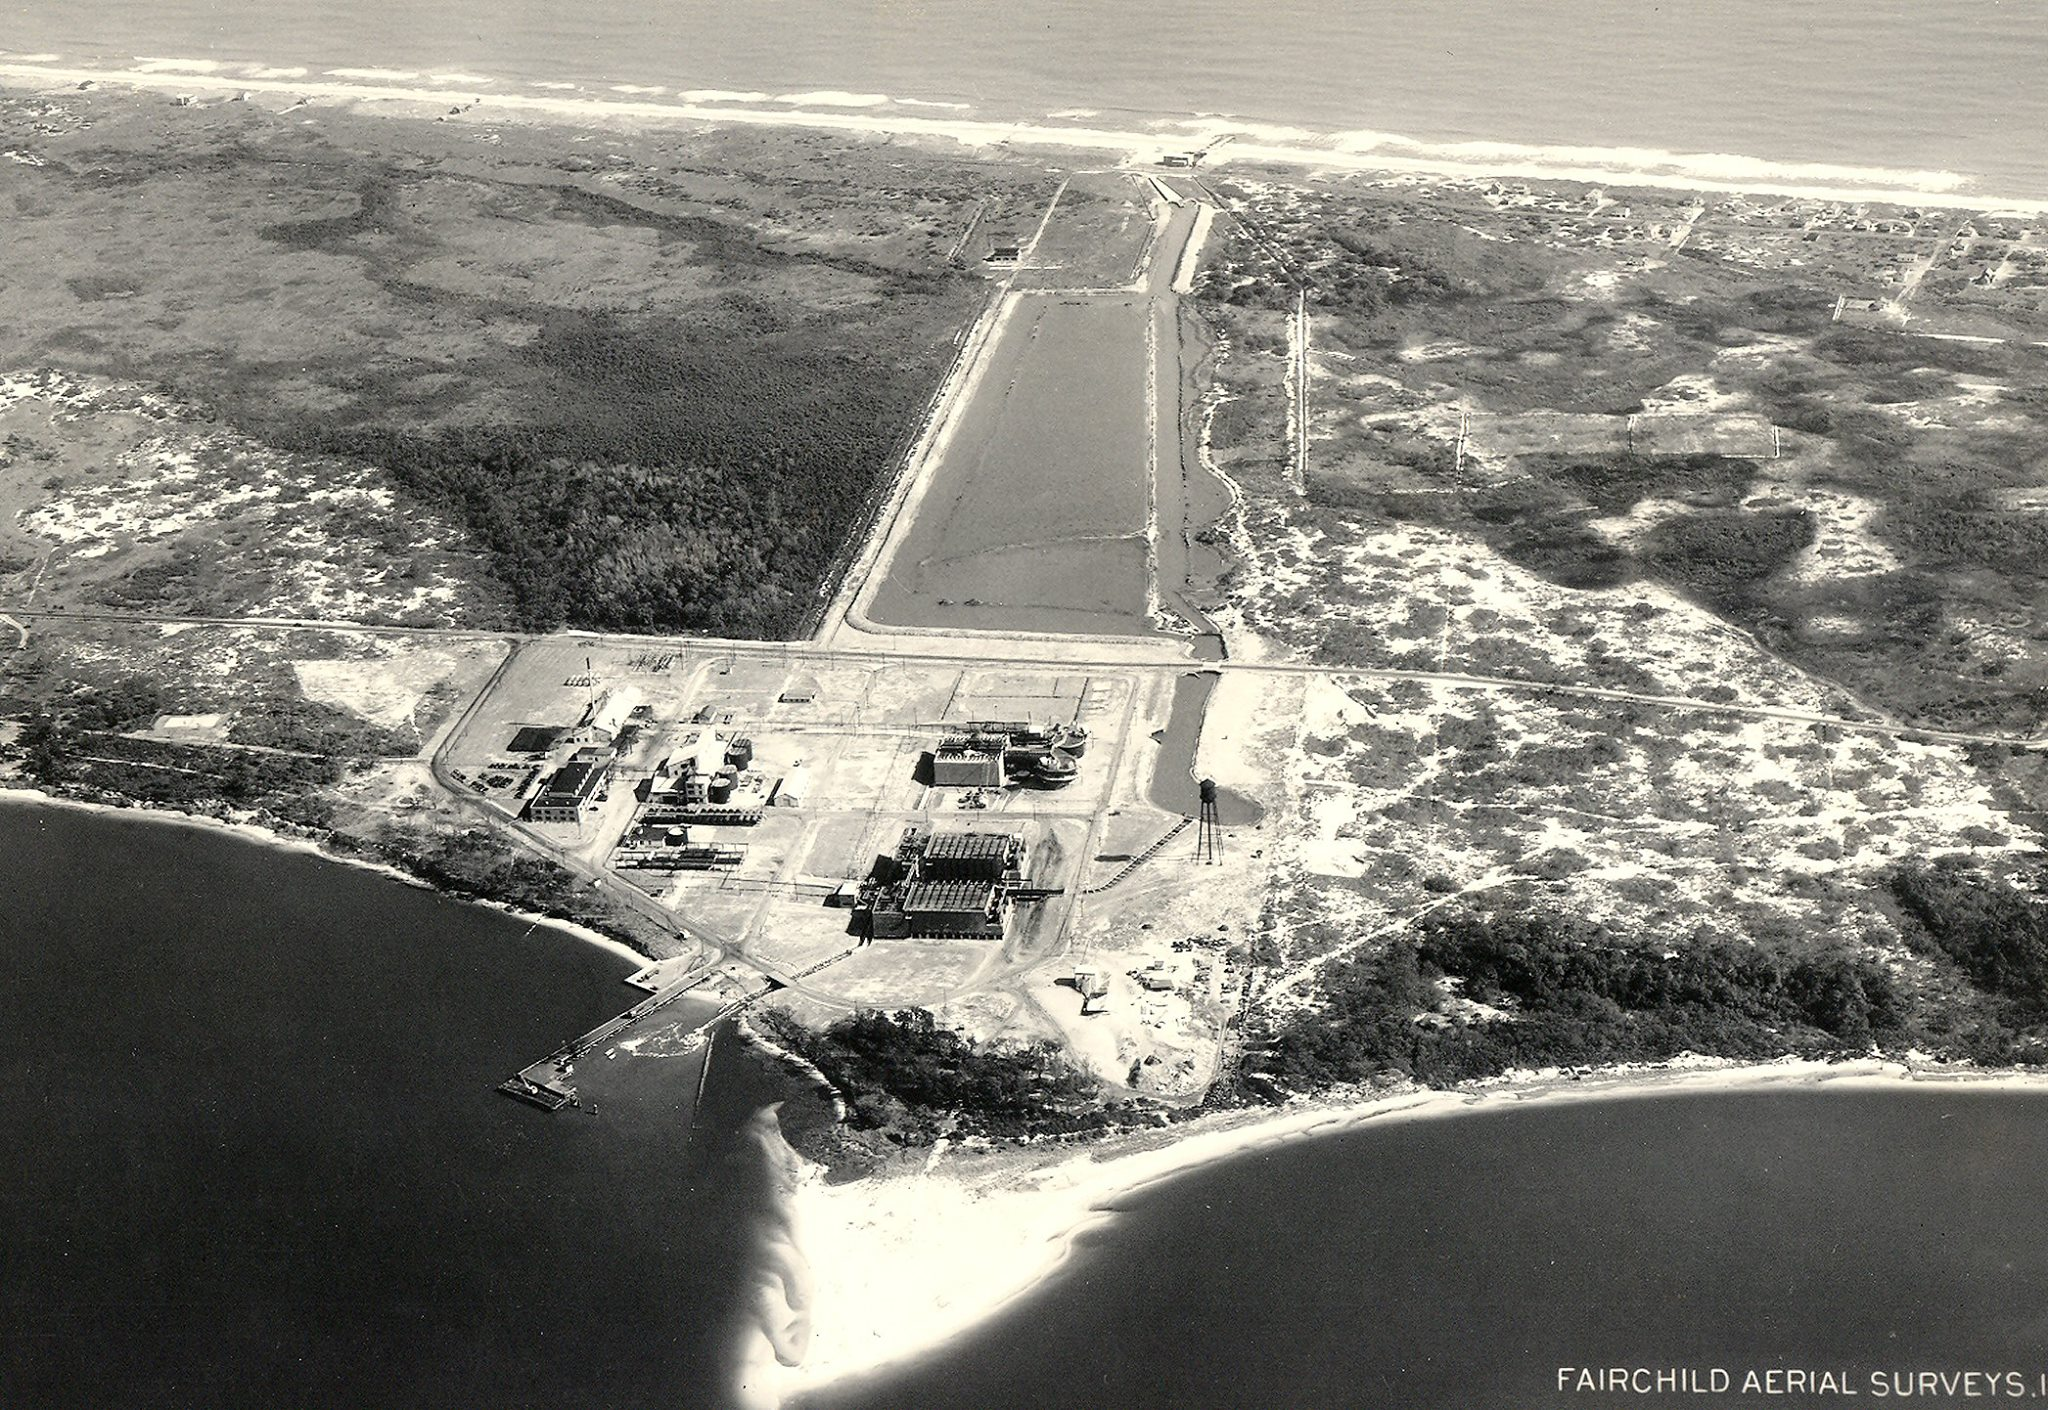 http://federal-point-history.org/wp-content/uploads/photo-gallery/Ethylene%20Di-Bromide%20Plant%20-%20Kure%20Beach%202.jpg